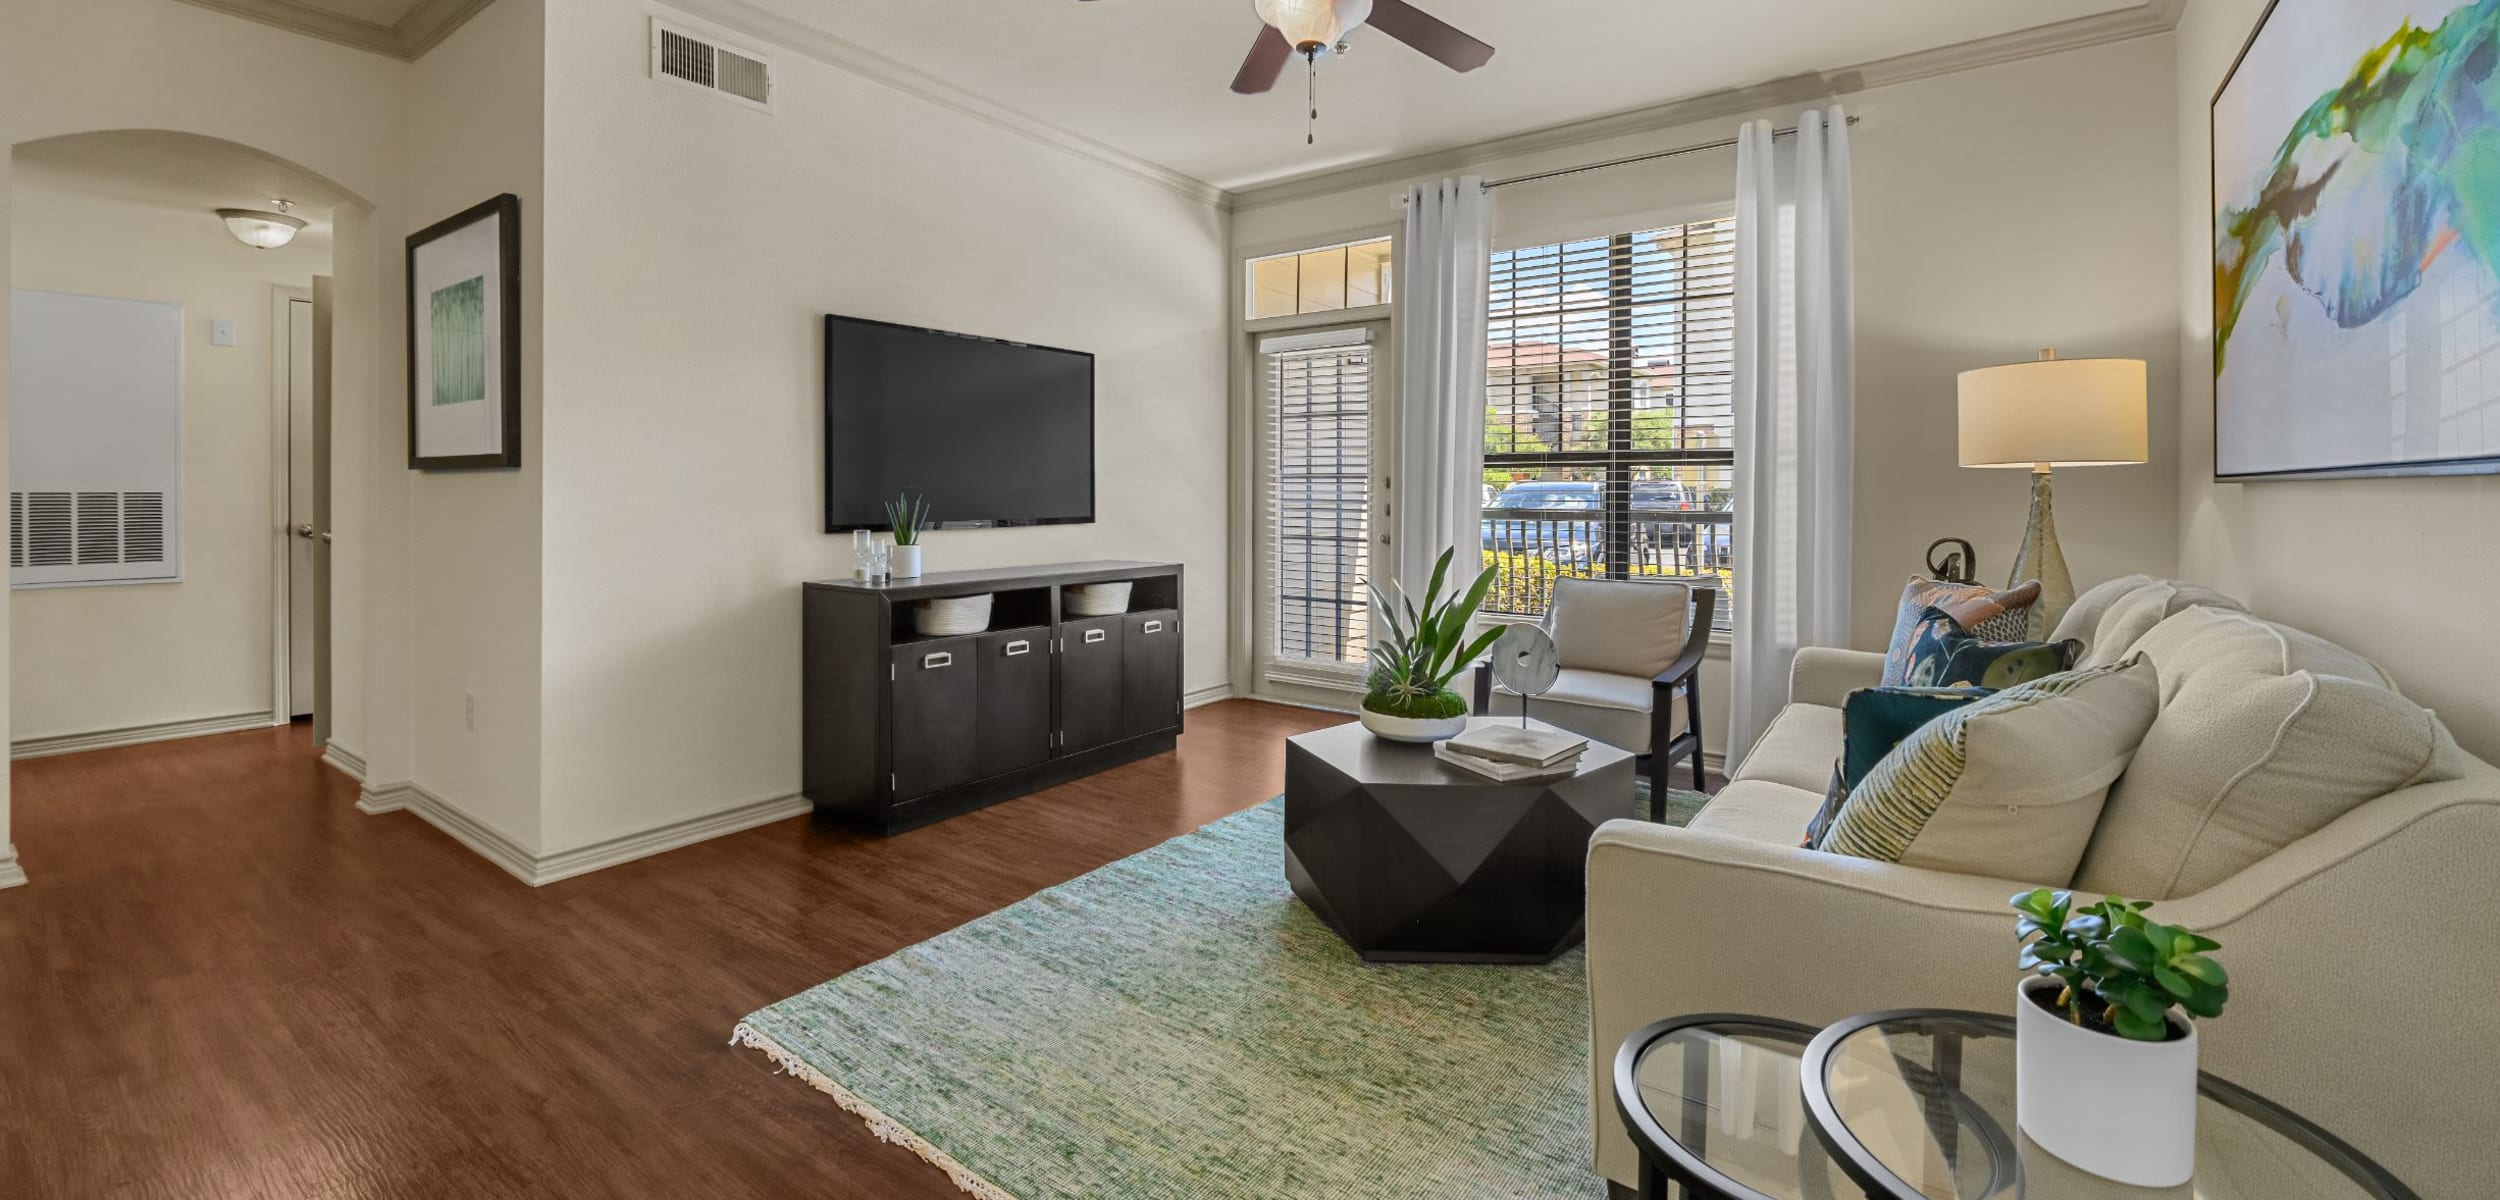 Open and bright living area with wood style flooring and ceiling fan at Marquis Lakeline Station in Austin, Texas